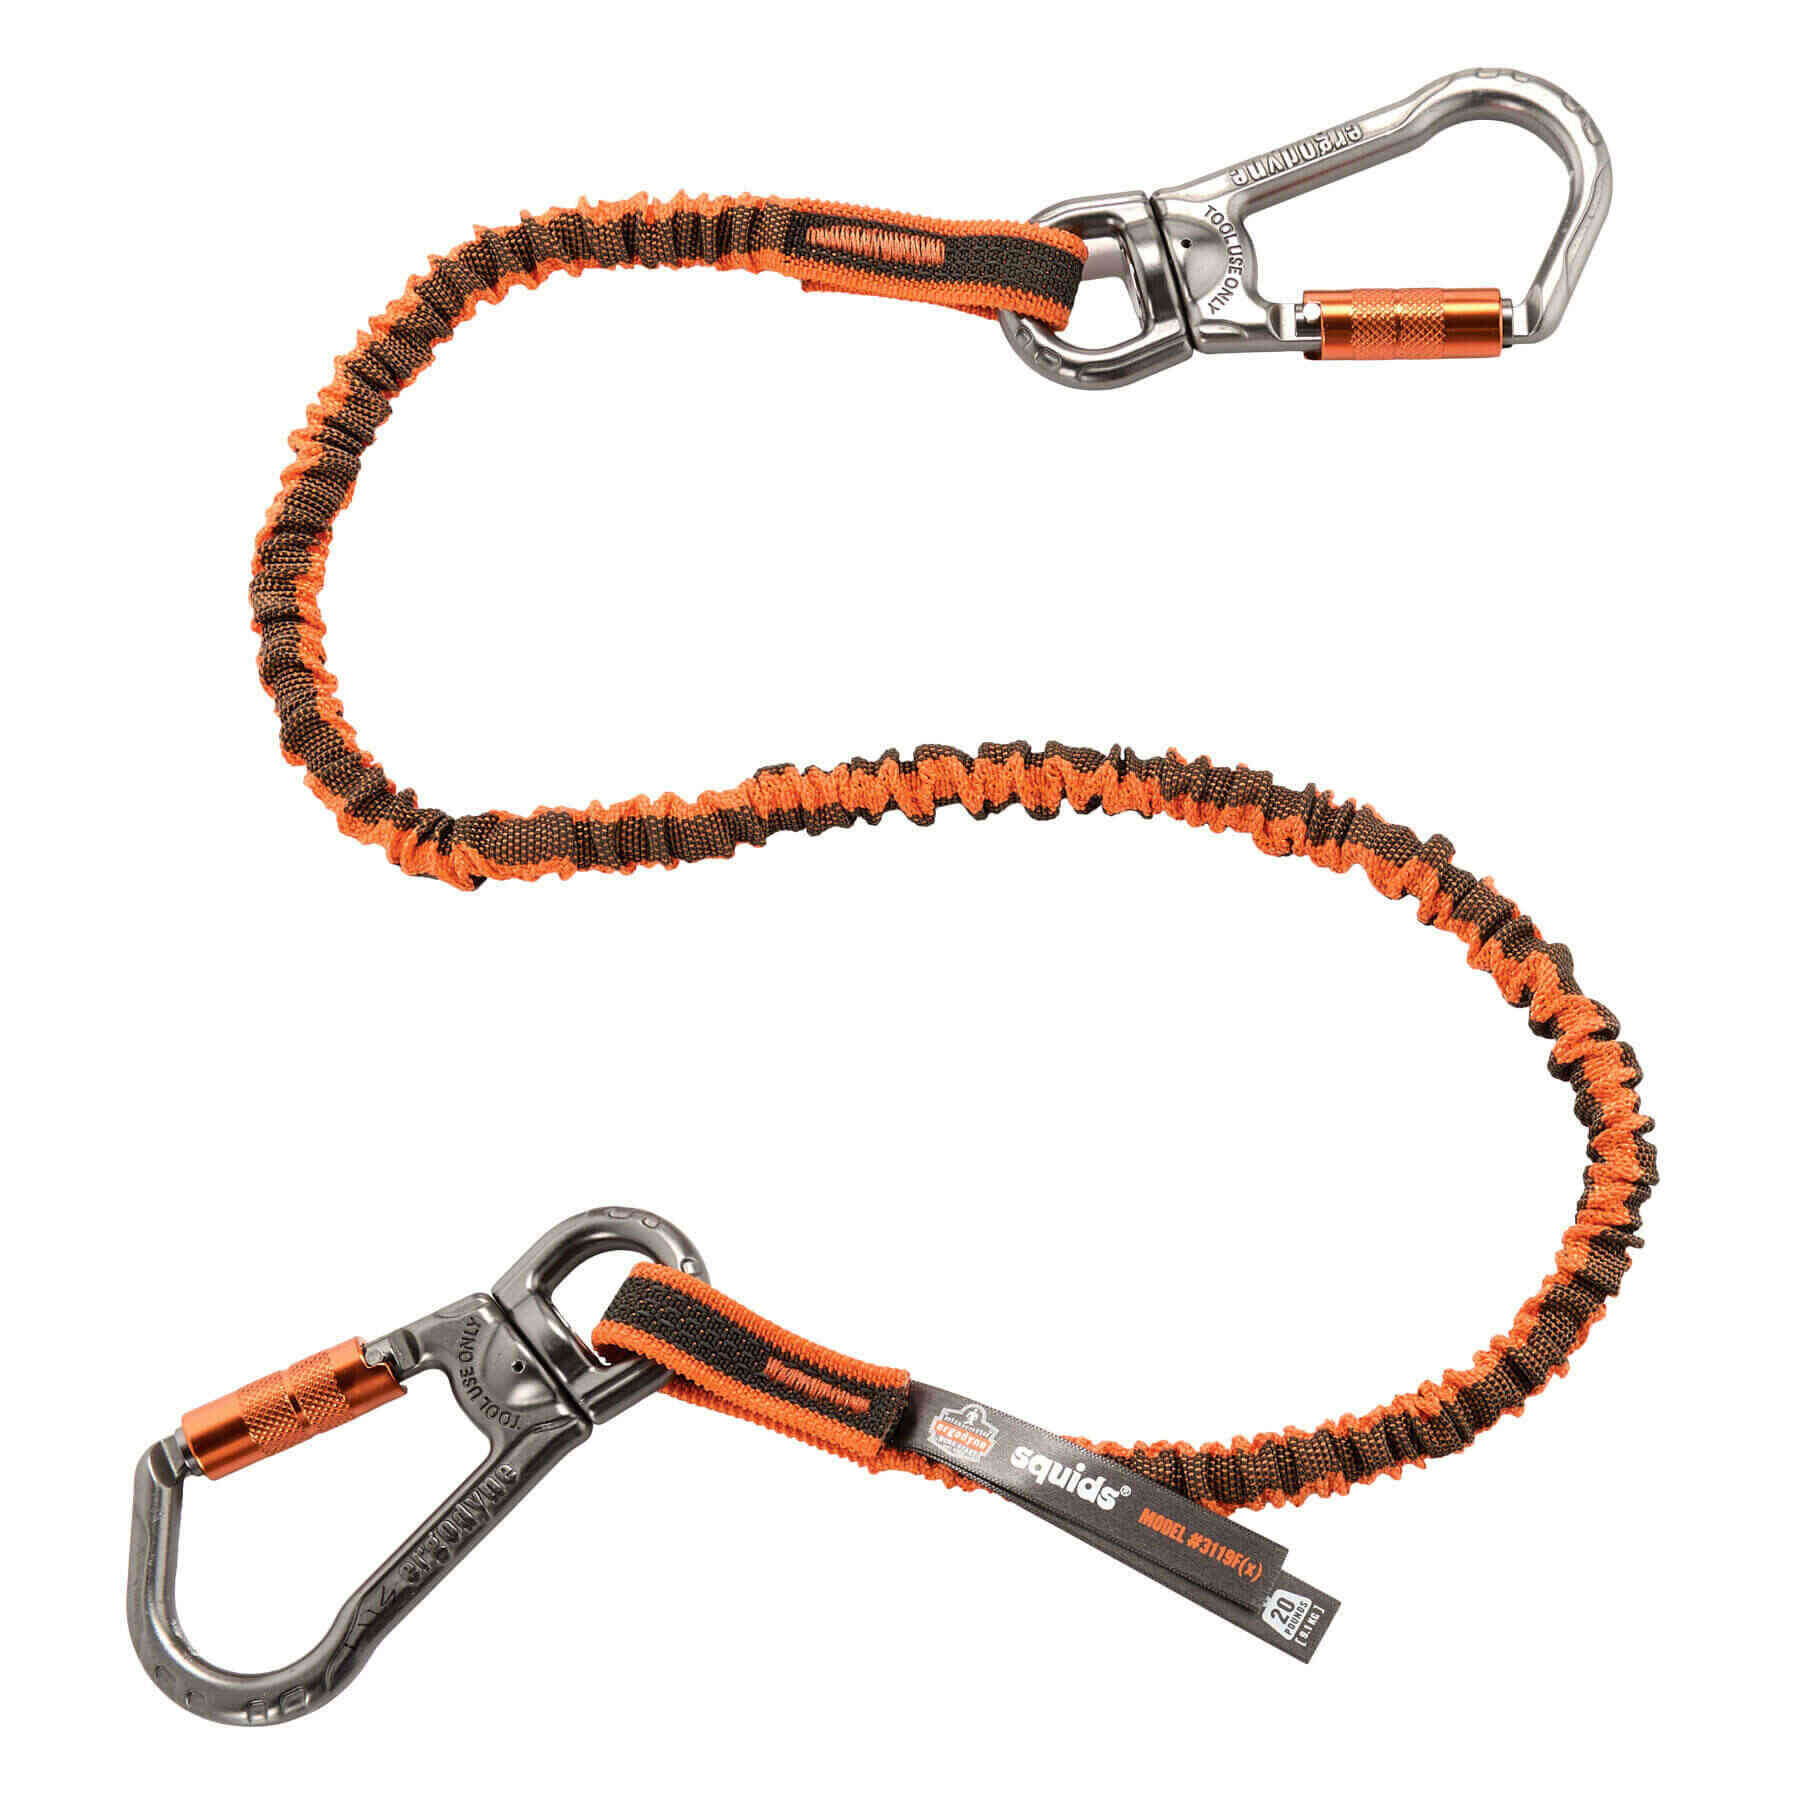 Squids 3119F(x) Triple-Locking Dual Carabiner Tool Lanyard with Swivel - 25lbs